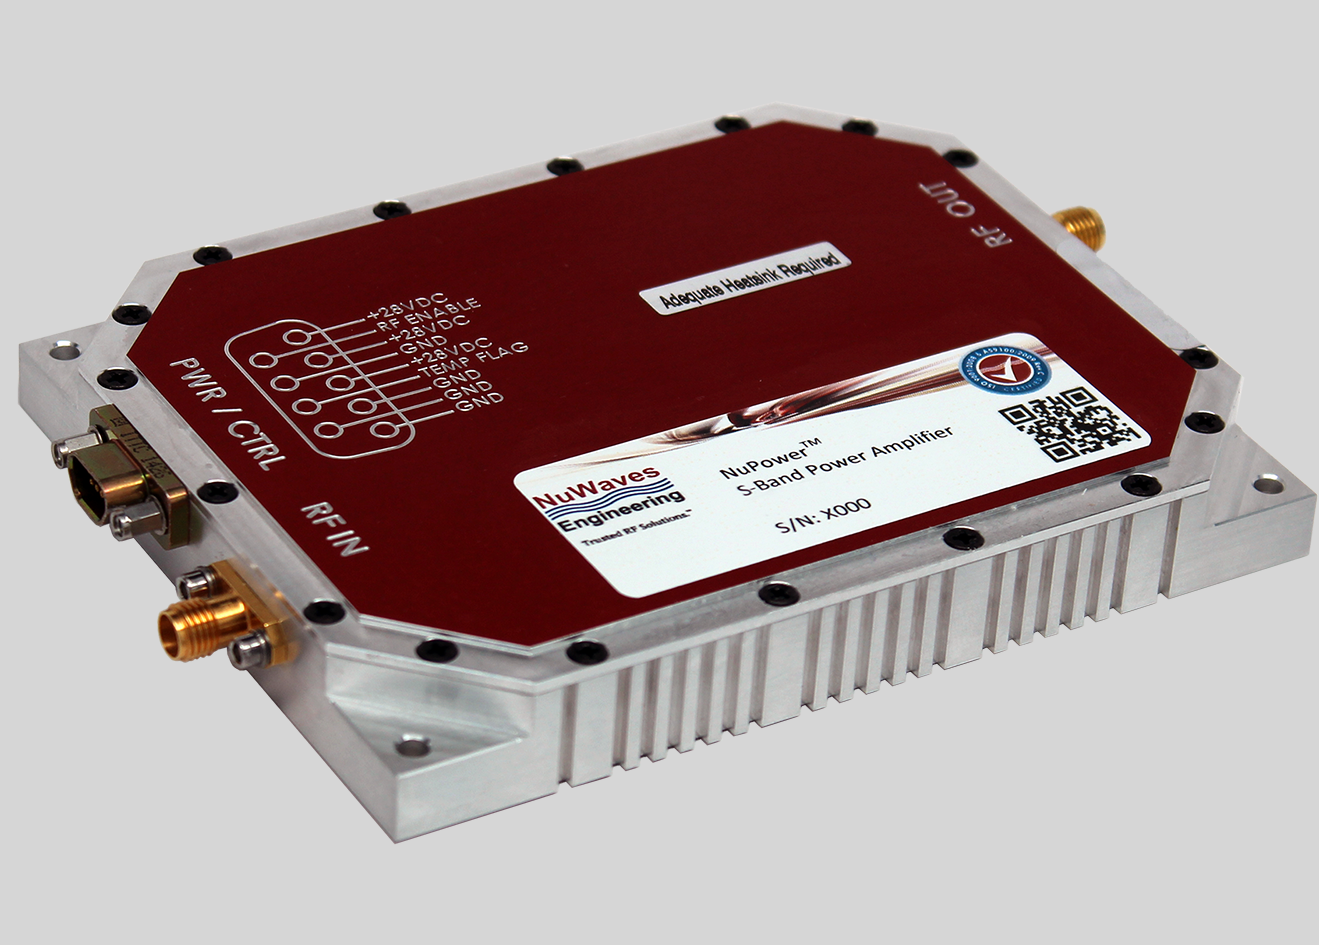 S-band RF power amplifier provides 30W on average